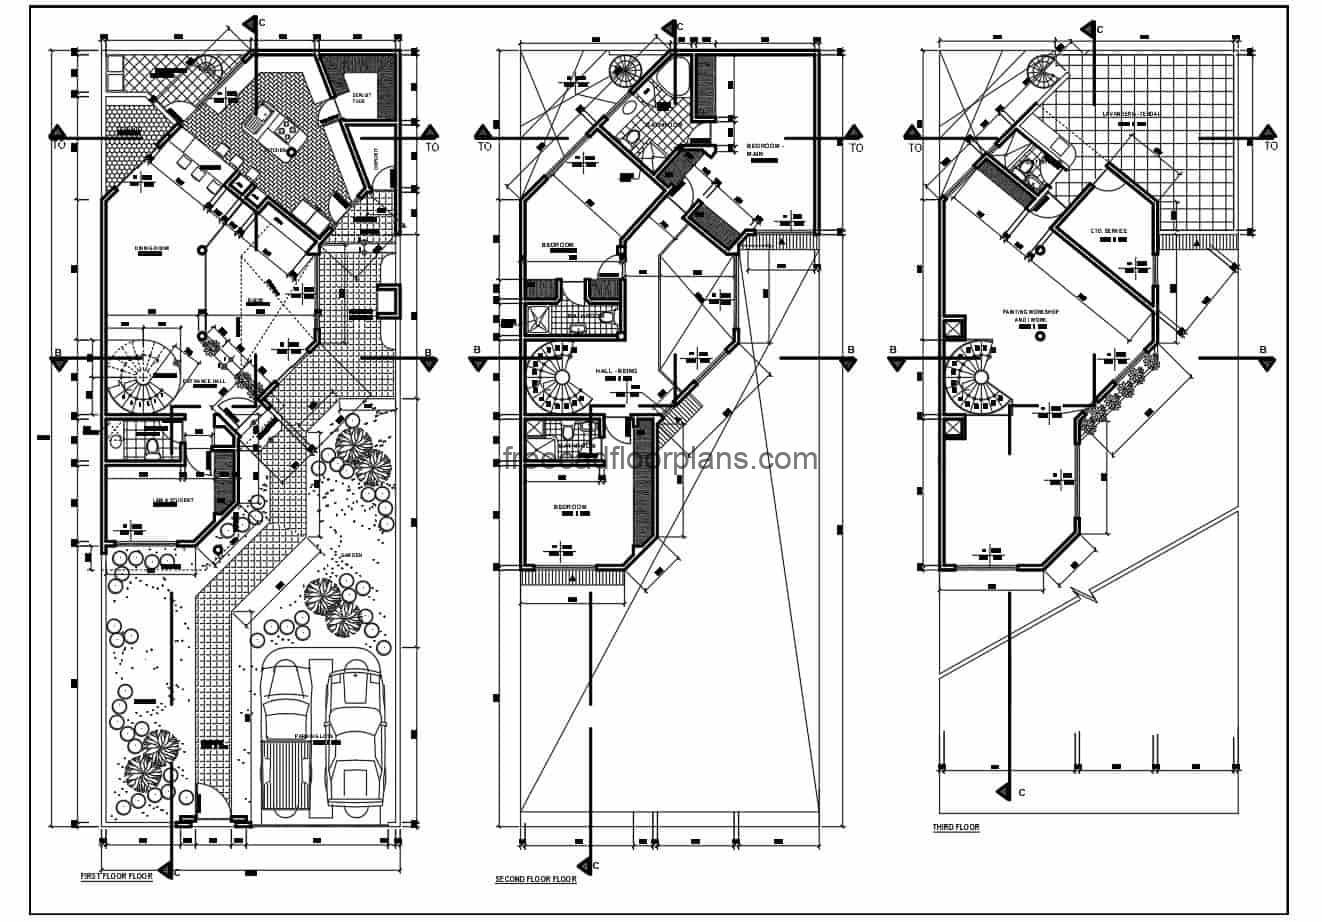 Complete architectural project of family residence of three levels with three rooms in total, in the first level it has the social areas, living room, kitchen, dining room, half bath, pantry, double garage. The second level has a private area with three bedrooms, and the third level has a service area and a work room. The complete project includes architectural plans, sanitary, electrical, foundation, structural, sections, elevations and other construction details. 2D DWG plans for free download.